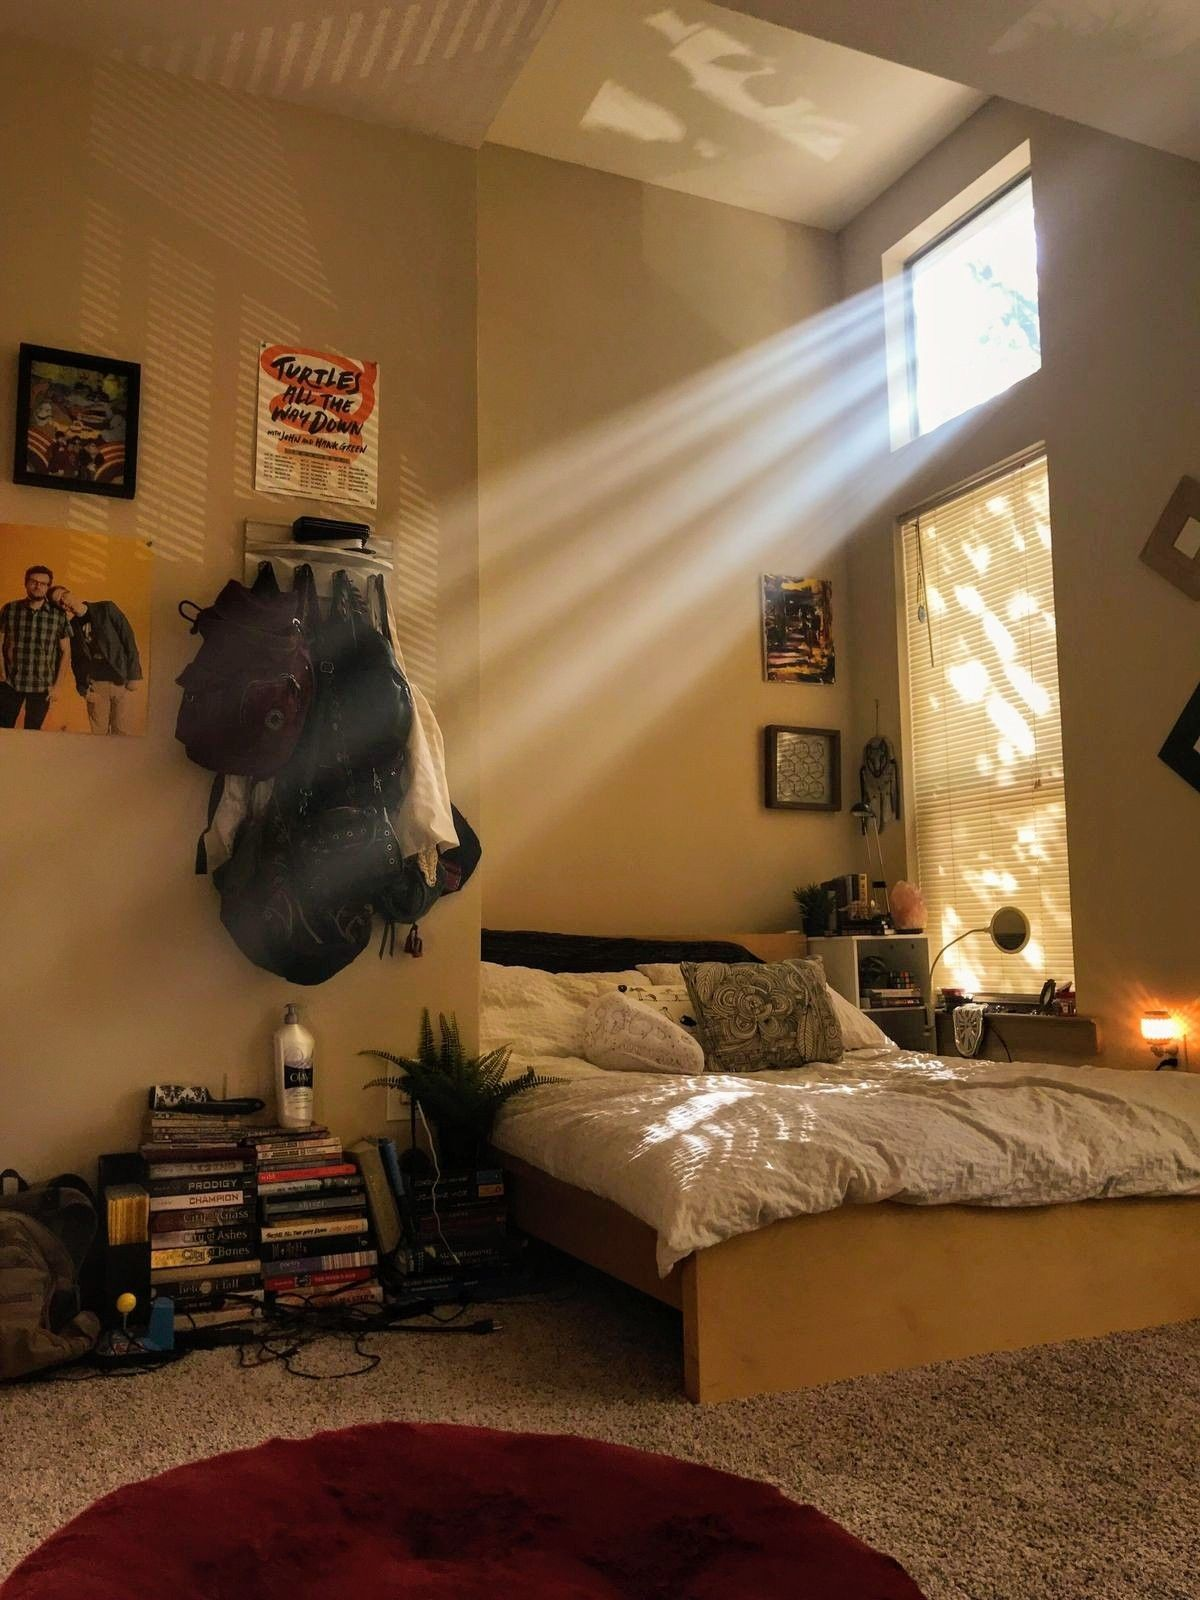 Omy plz  wish my room looked like this it   so also best house design images in future bedrooms home rh pinterest